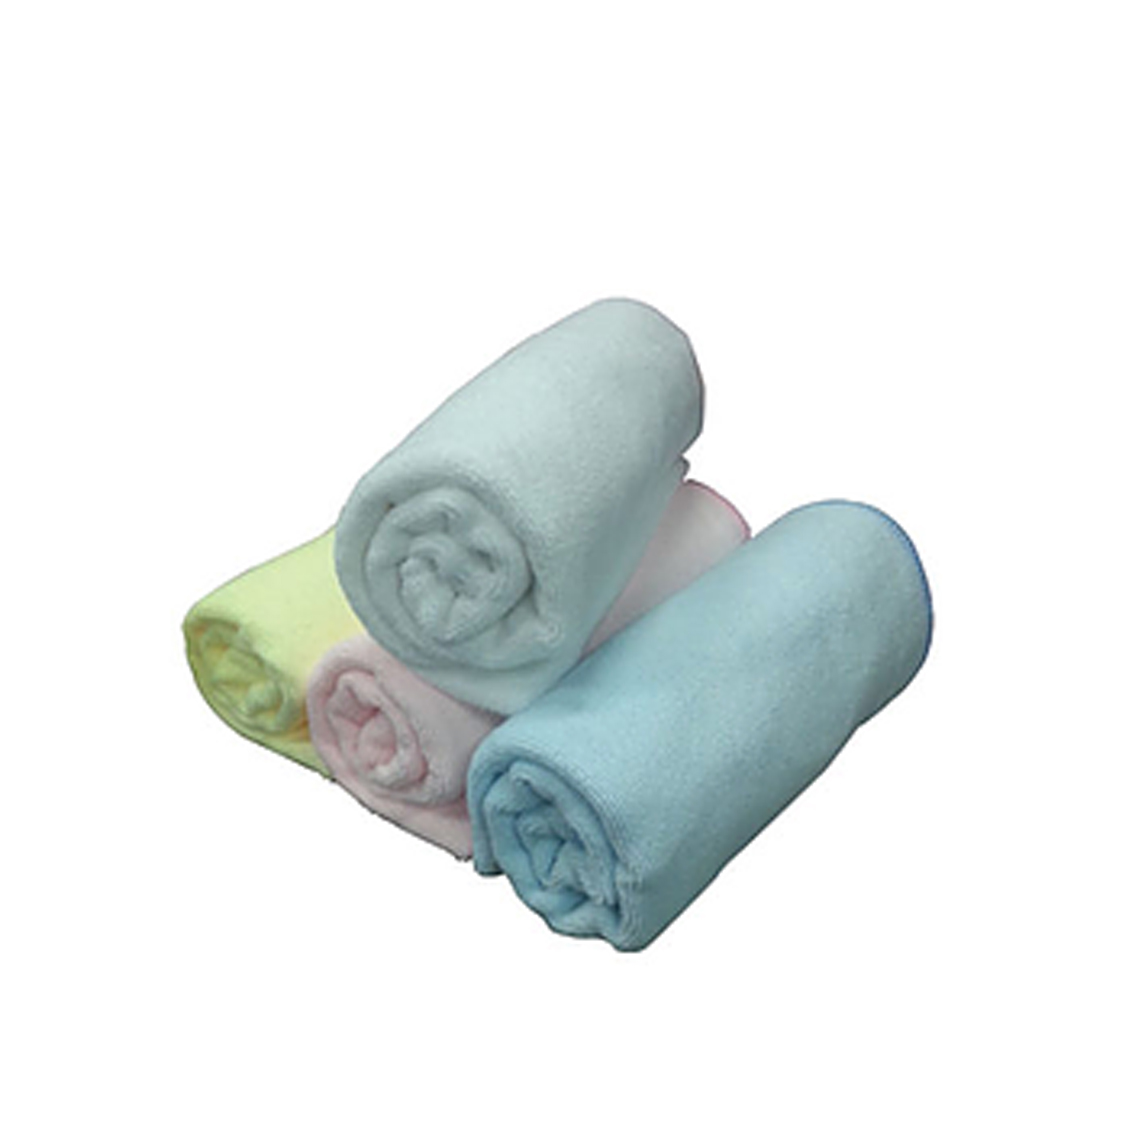 FG311 - Super Soft Microfibre Hand Towel 4